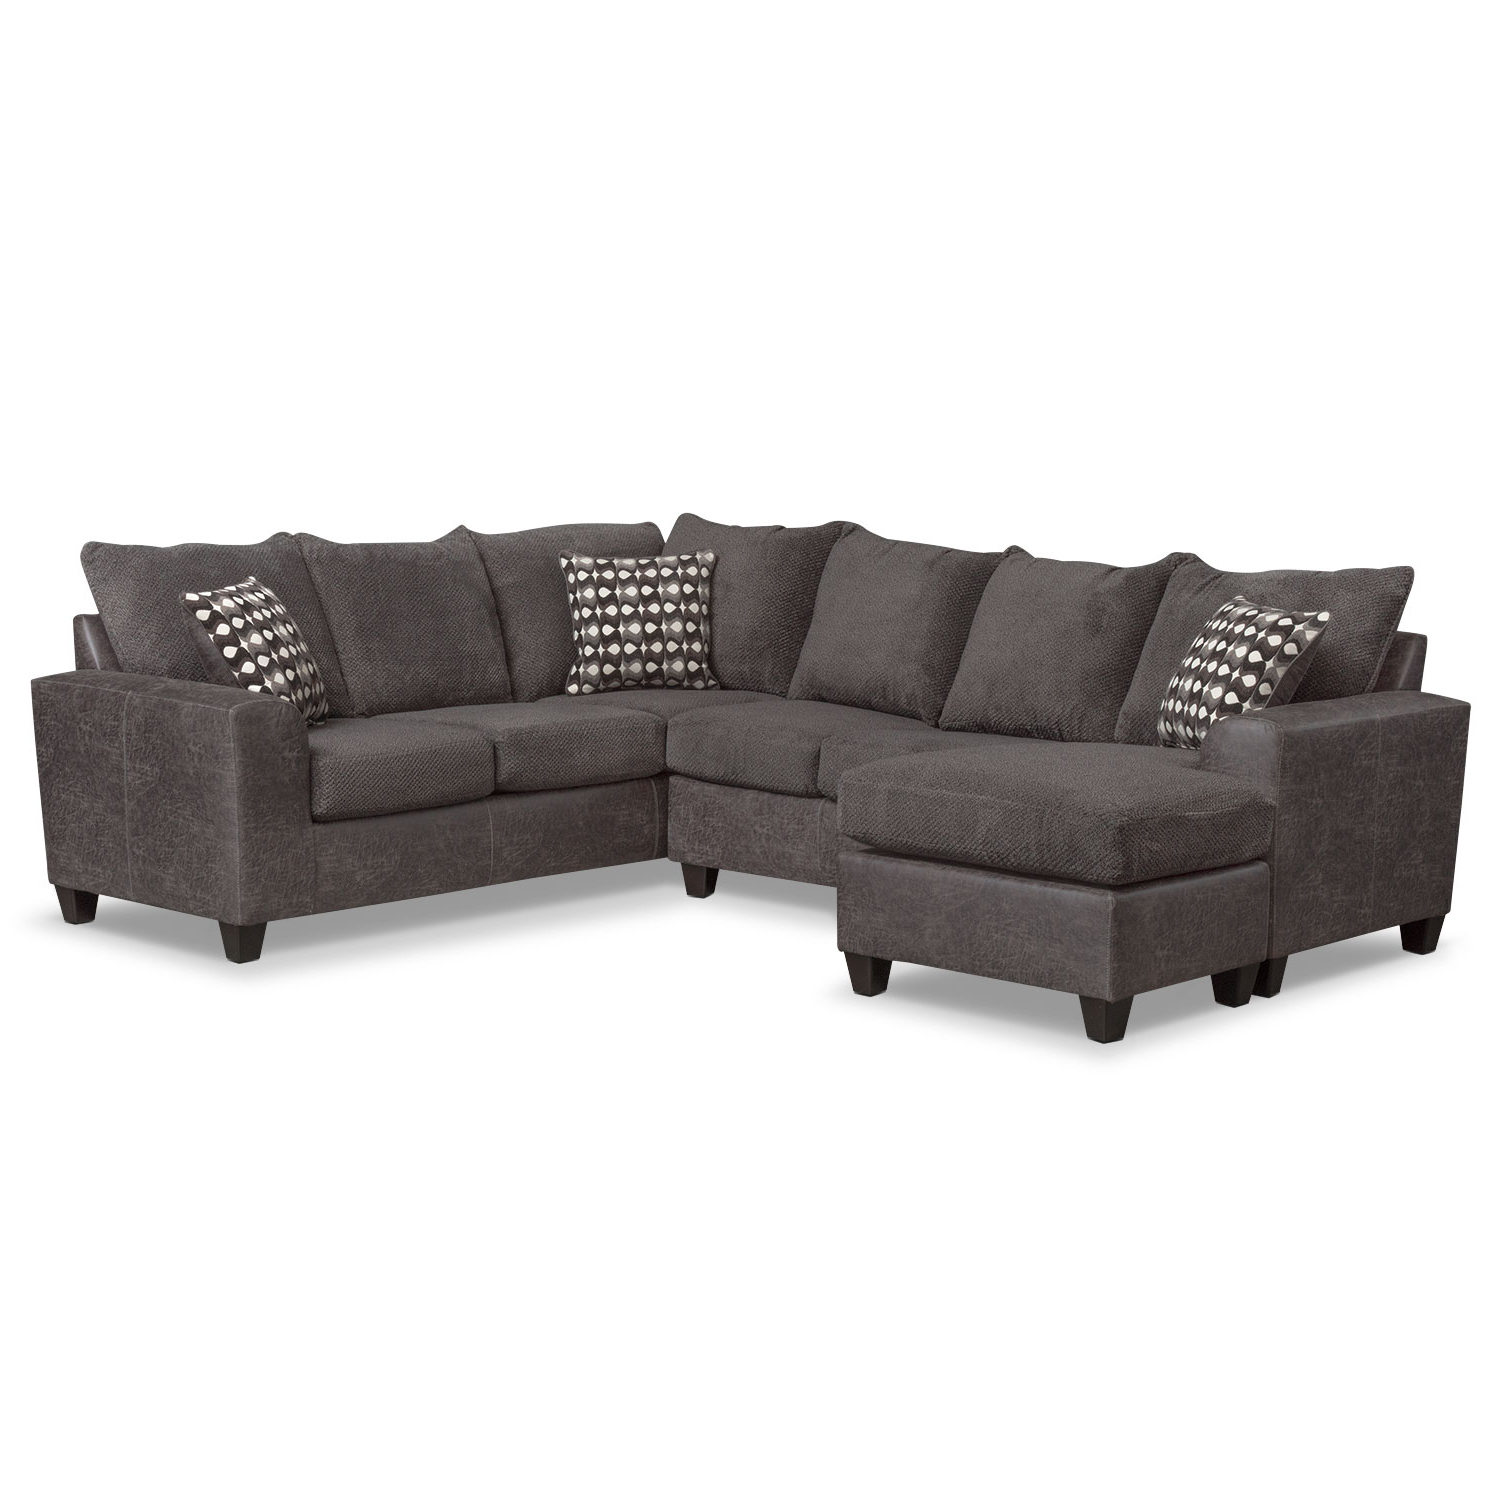 Lucy Grey 2 Piece Sleeper Sectionals With Laf Chaise In Trendy Sleeper Sectional With Chaise – Tidex (View 11 of 20)